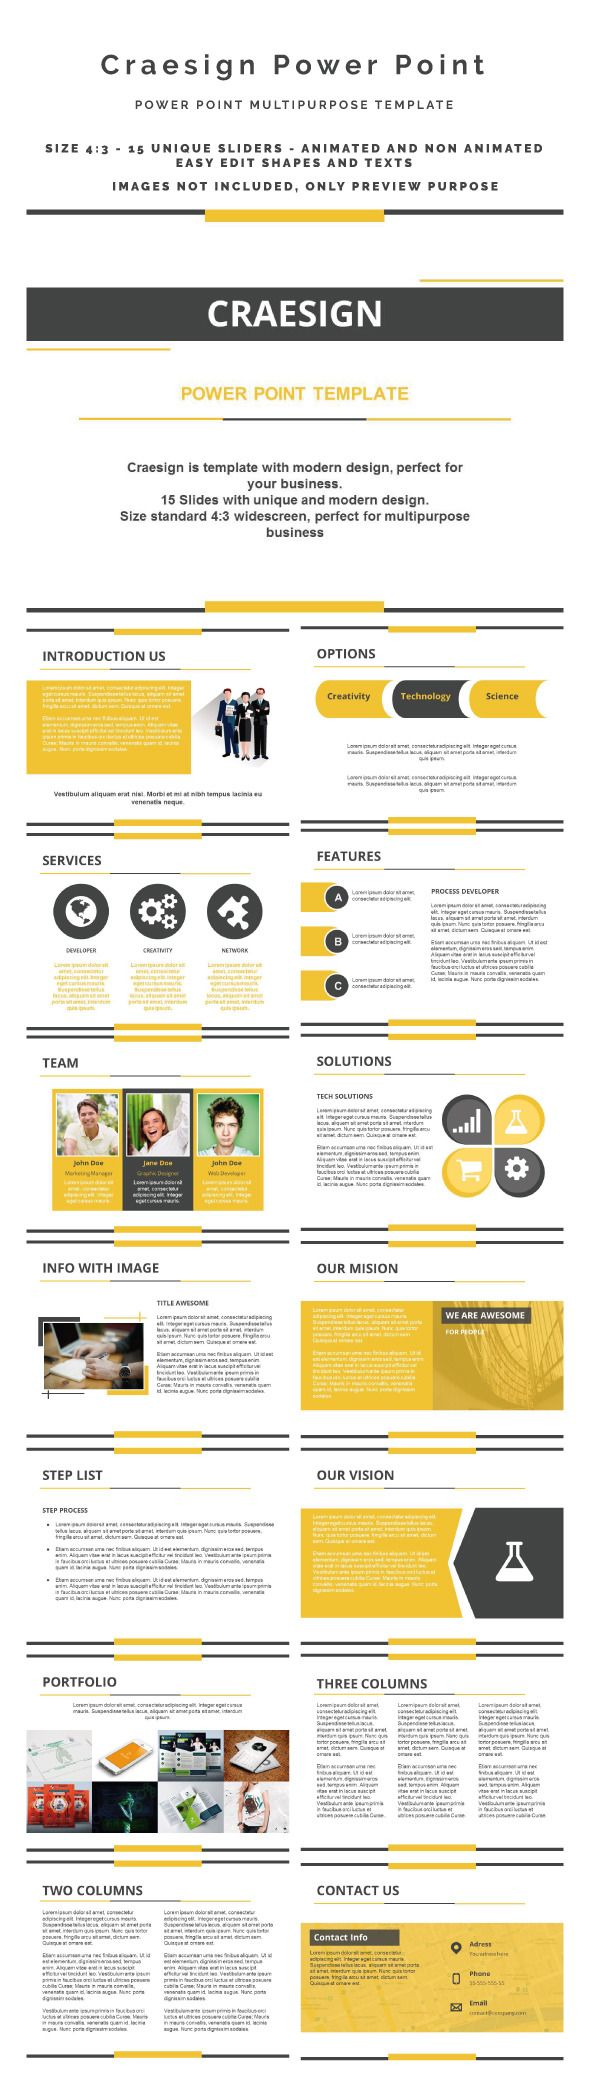 25 unique power point templates ideas on pinterest ppt template craesign power point template design download httpgraphicriver toneelgroepblik Choice Image